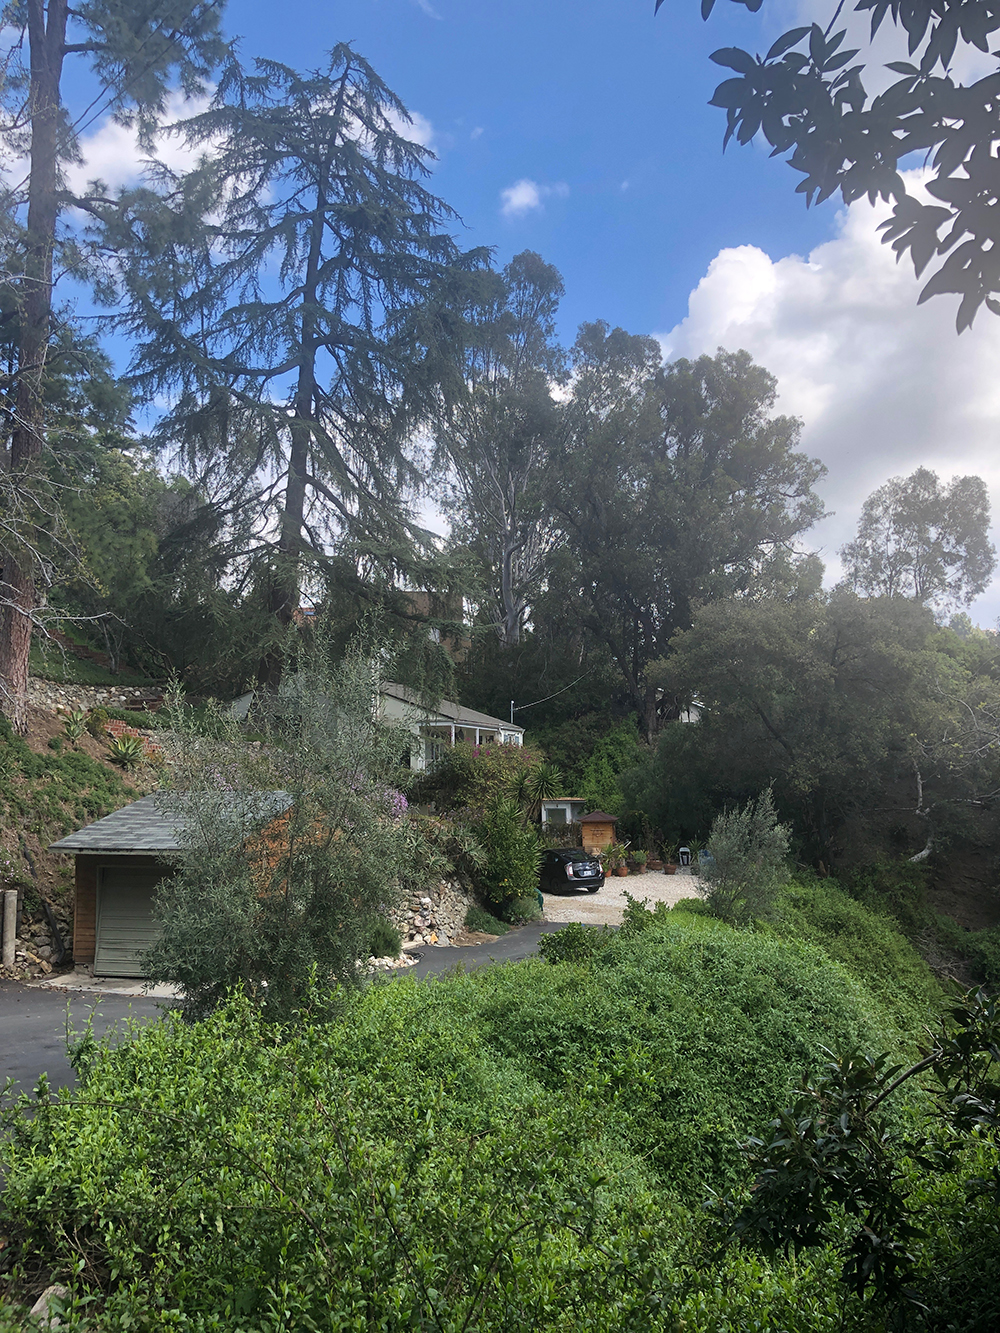 Poppy and Someday is a relaxing sanctuary located in the the Laurel Canyon neighborhood of Los Angeles.